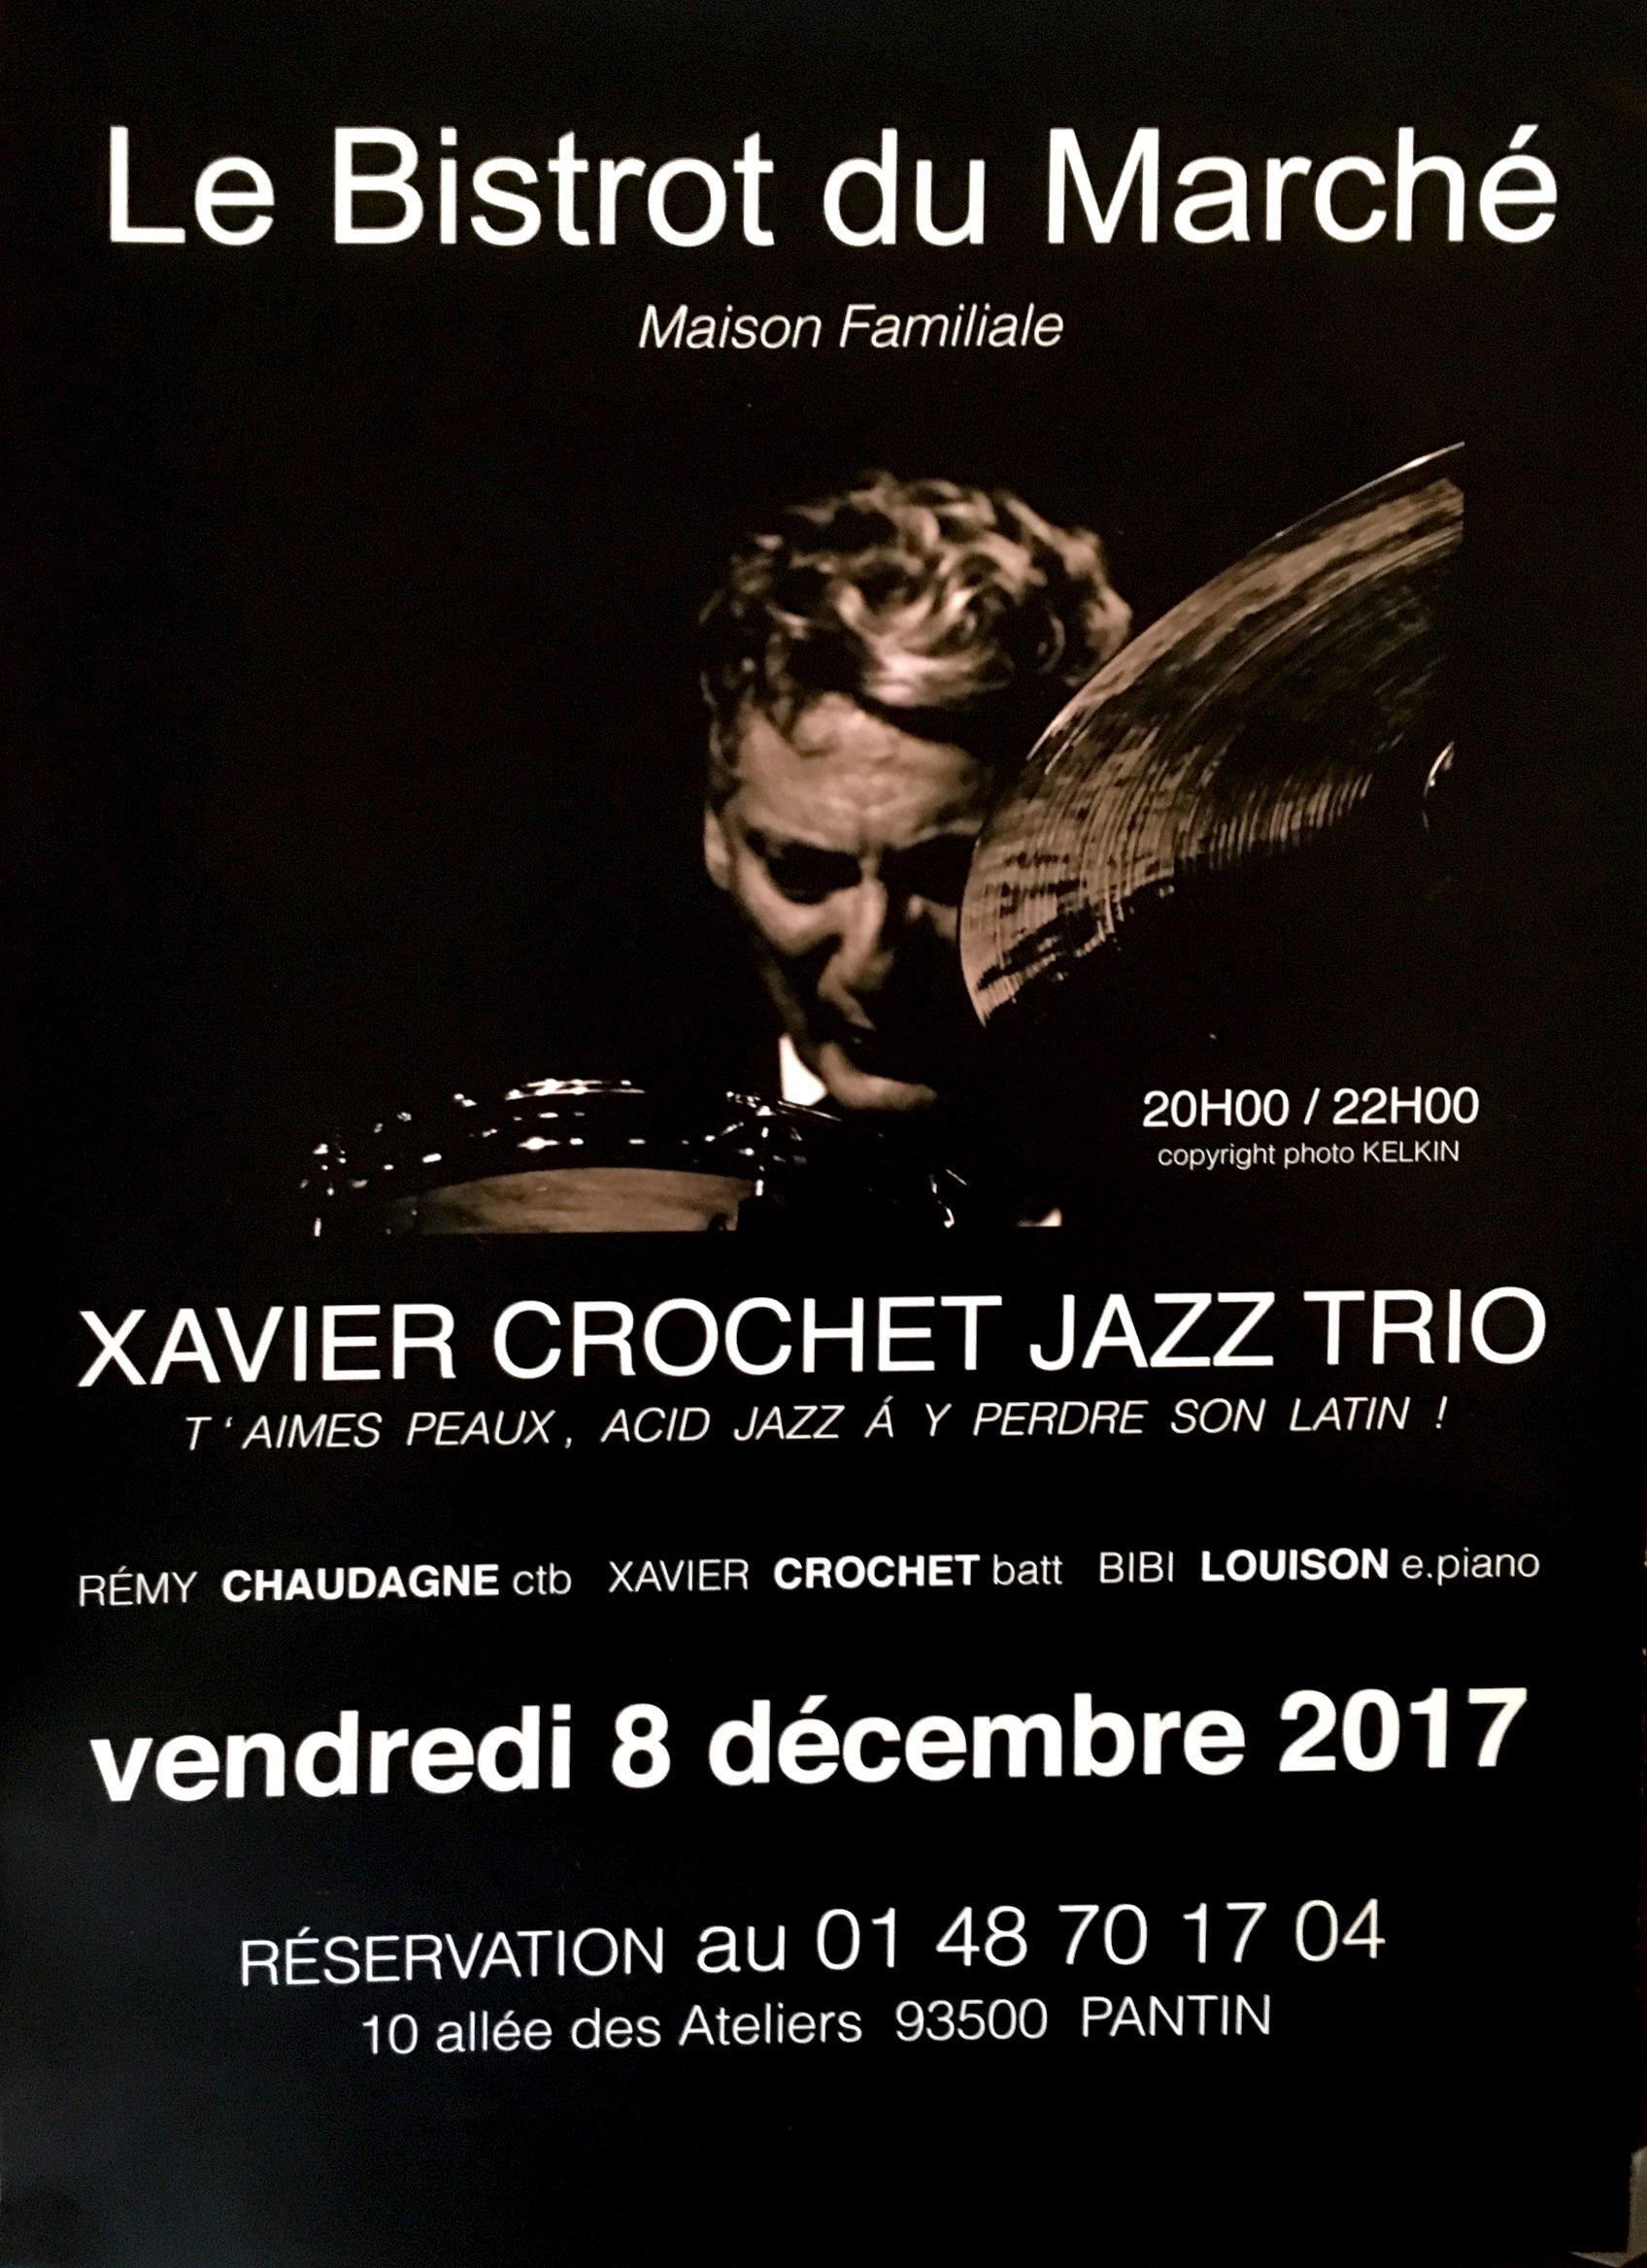 XAVIER CROCHET JAZZ TRIO